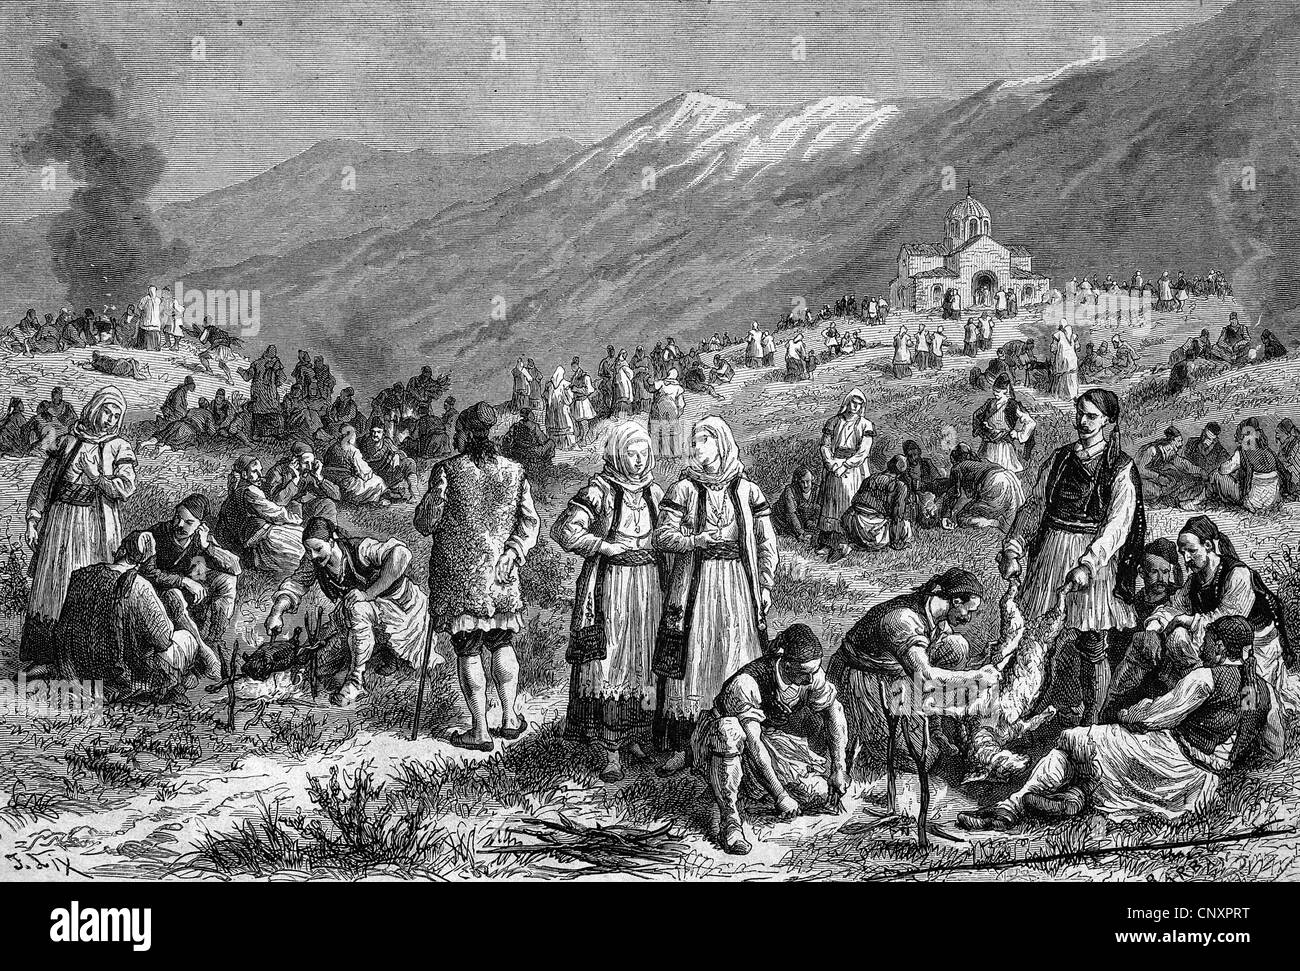 Festival at the end of the fasting period in Thebes, Egypt, historical engraving of 1883 - Stock Image